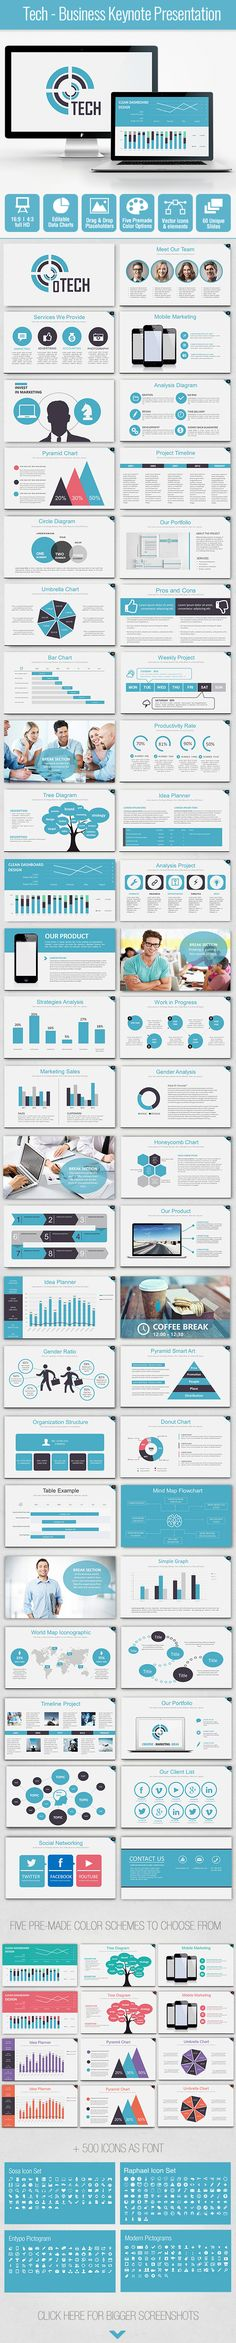 Tech - Business Keynote Presentation Template #slides #design Download: http://graphicriver.net/item/tech-business-keynote-presentation/13461600?ref=ksioks